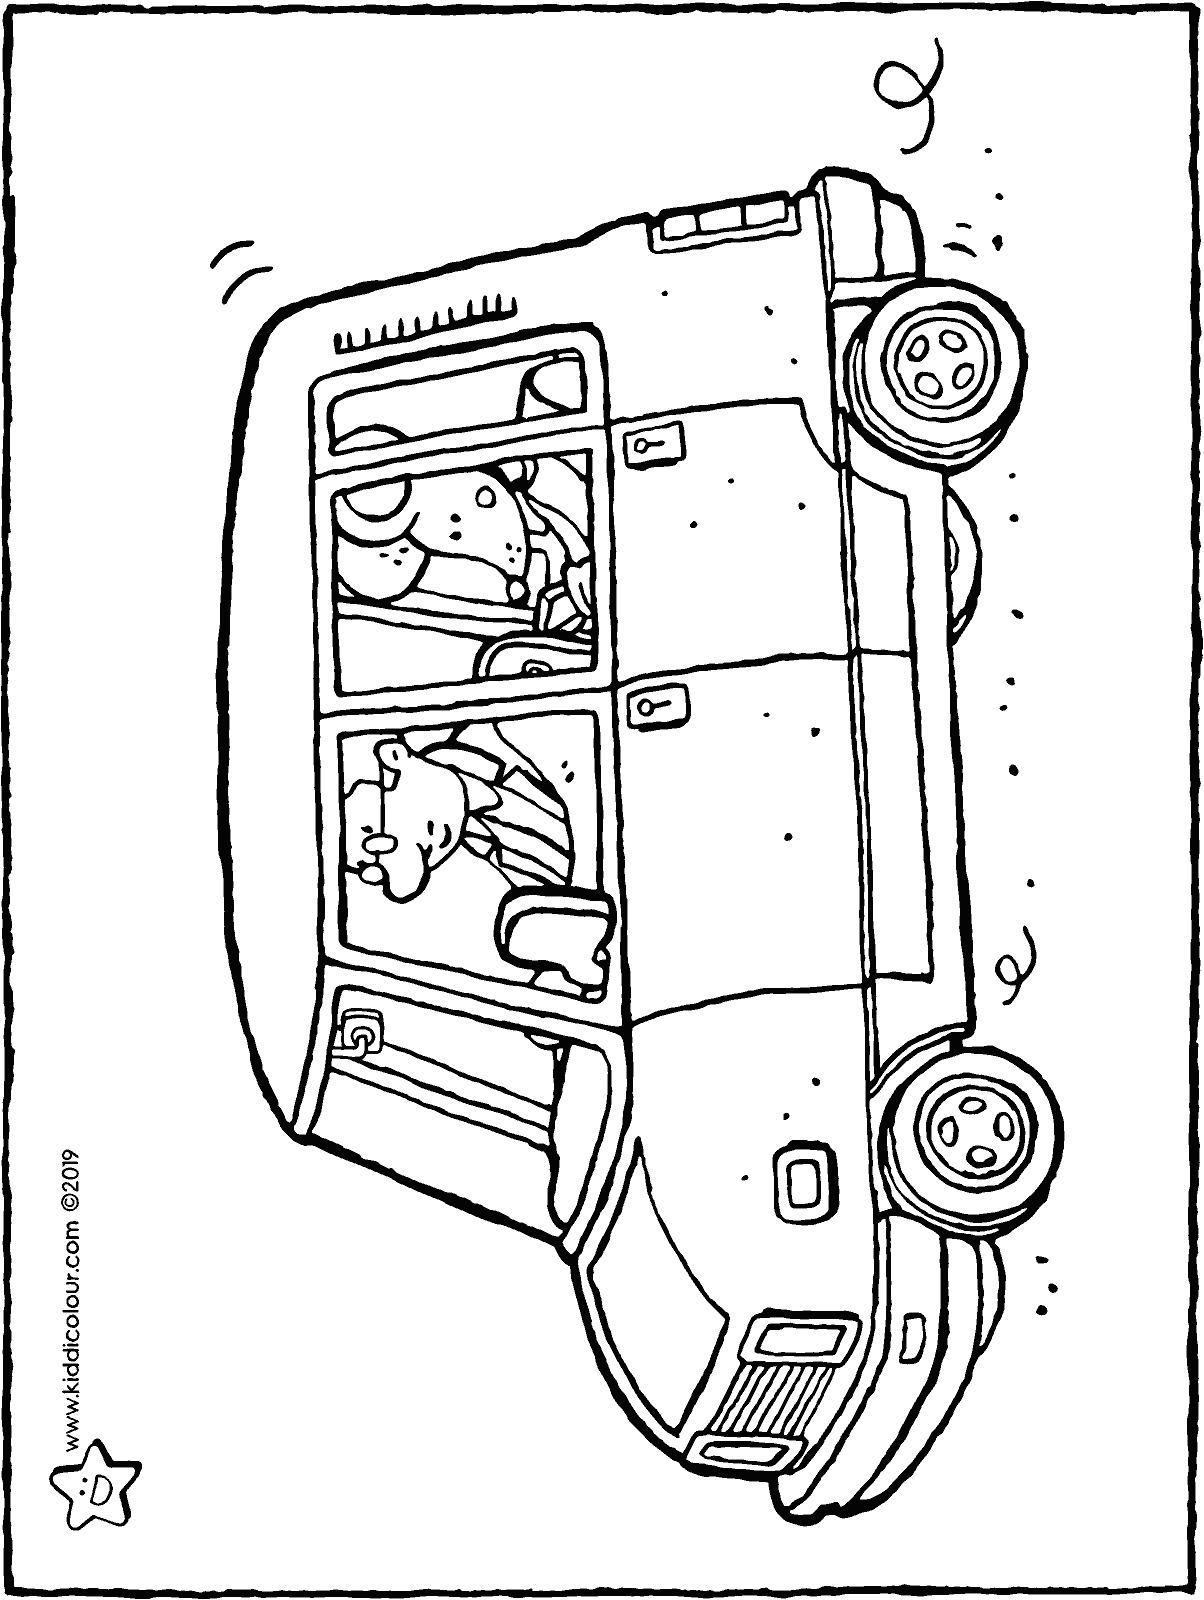 Thomas in the car colouring page drawing picture 01H